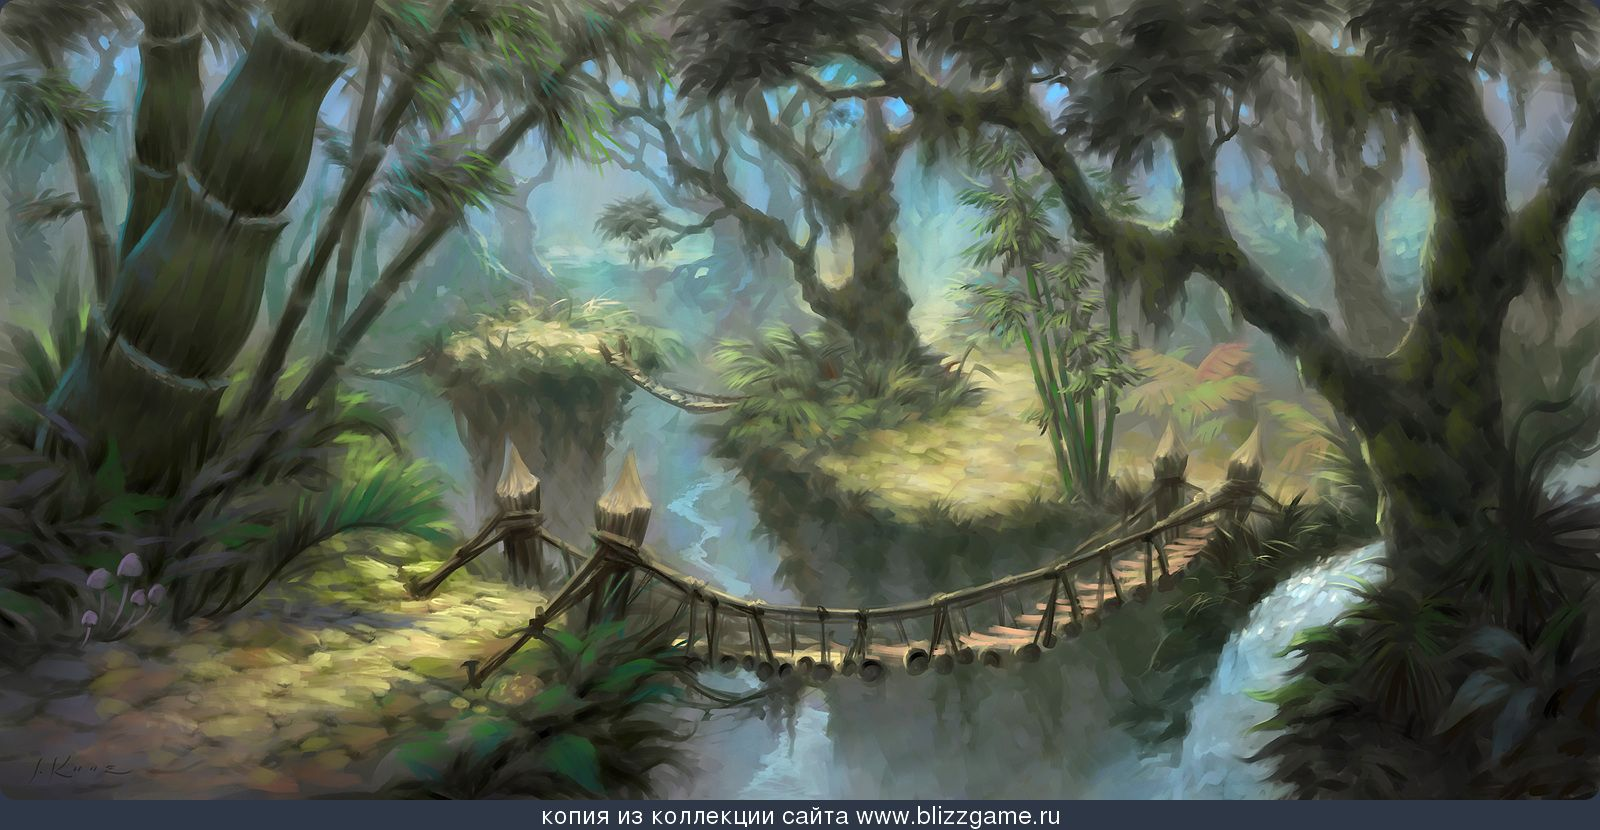 Jungle Wallpaper World Of Warcraft: Pin By Brent Fox On Environments 1: All Types